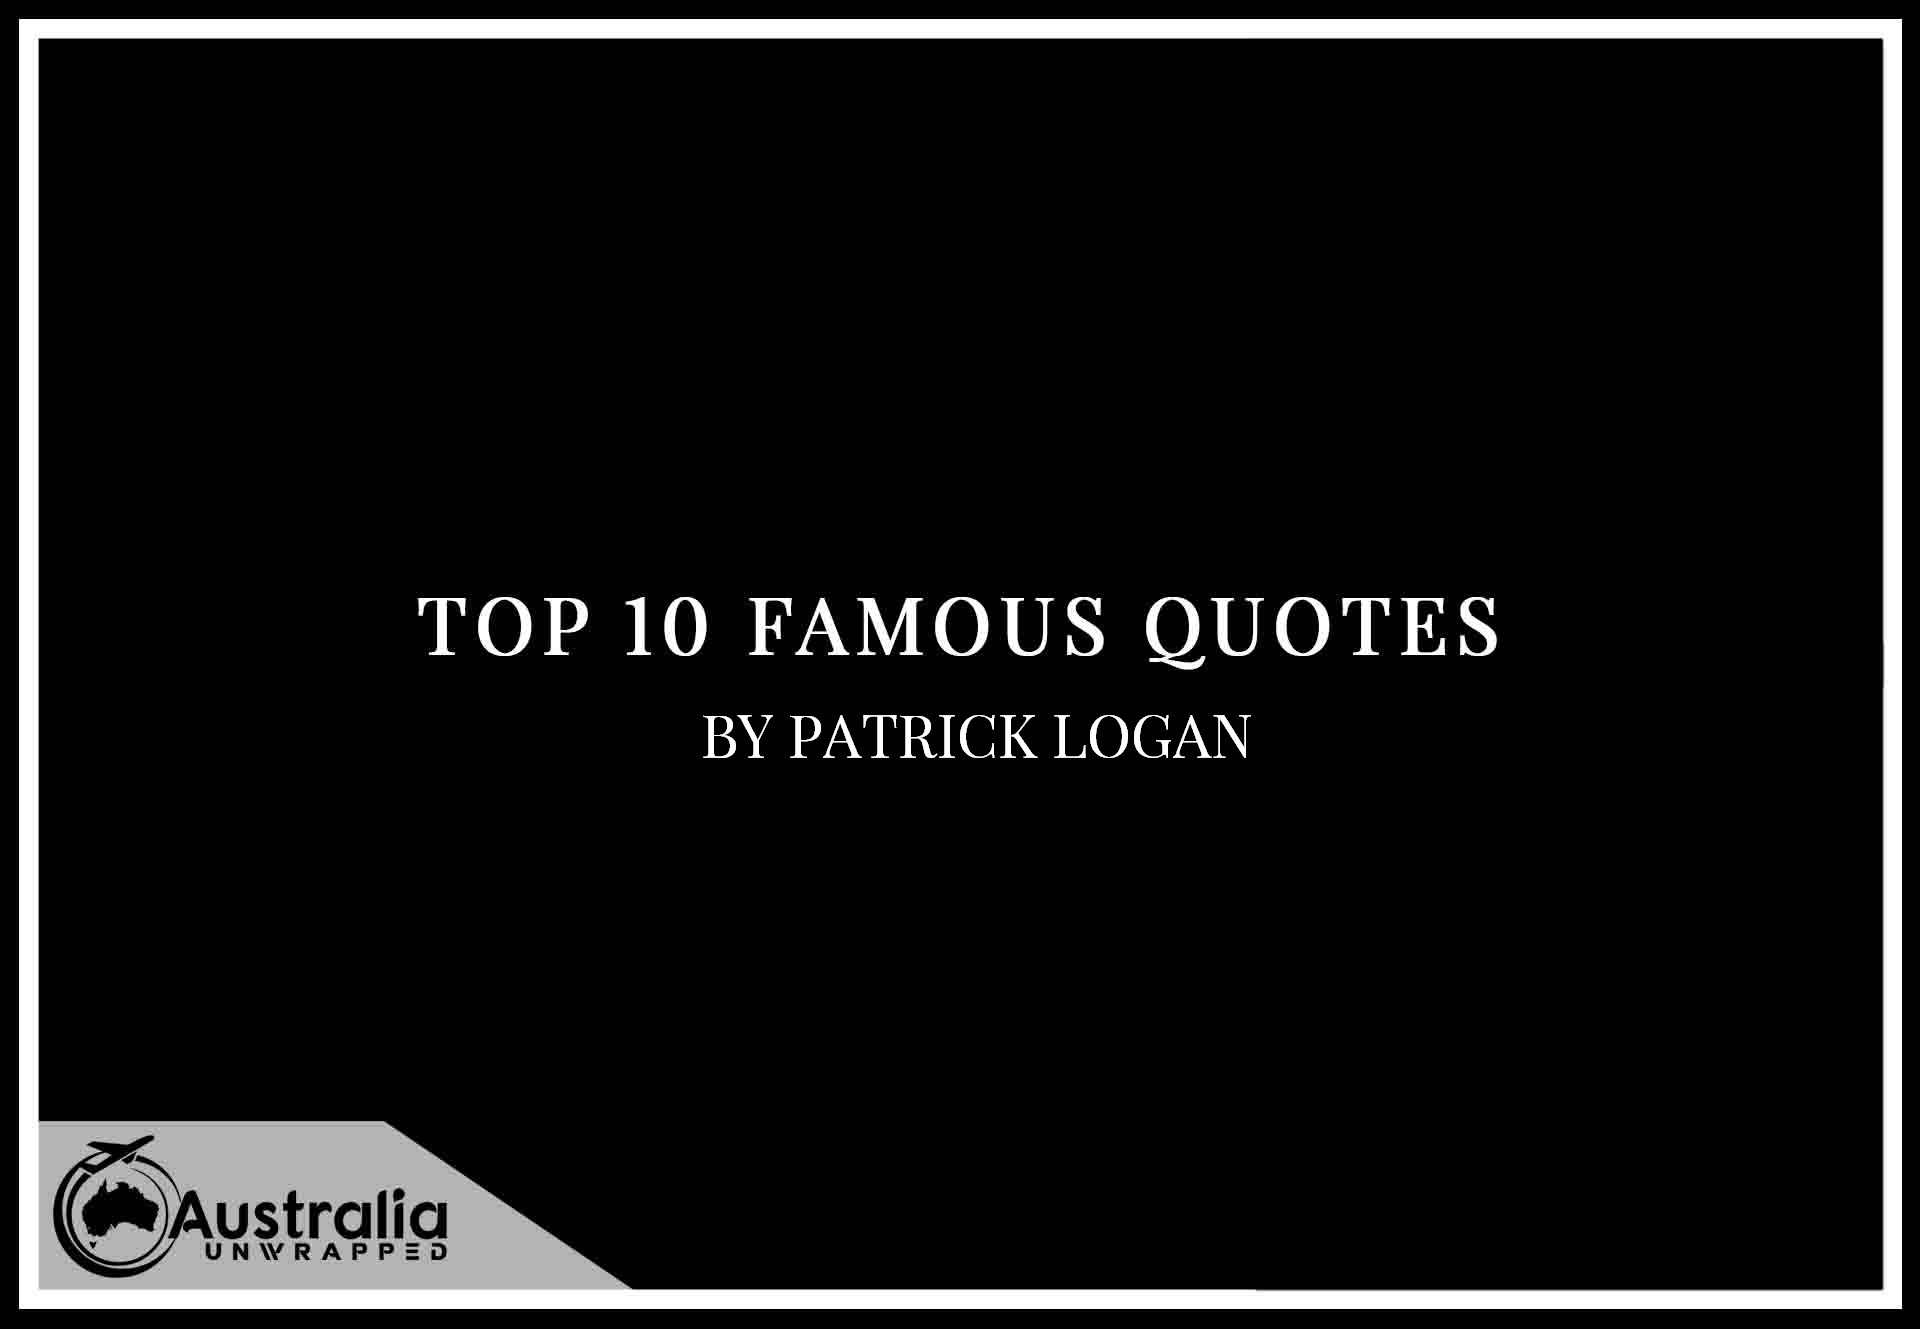 Top 10 Famous Quotes by Author Patrick Logan